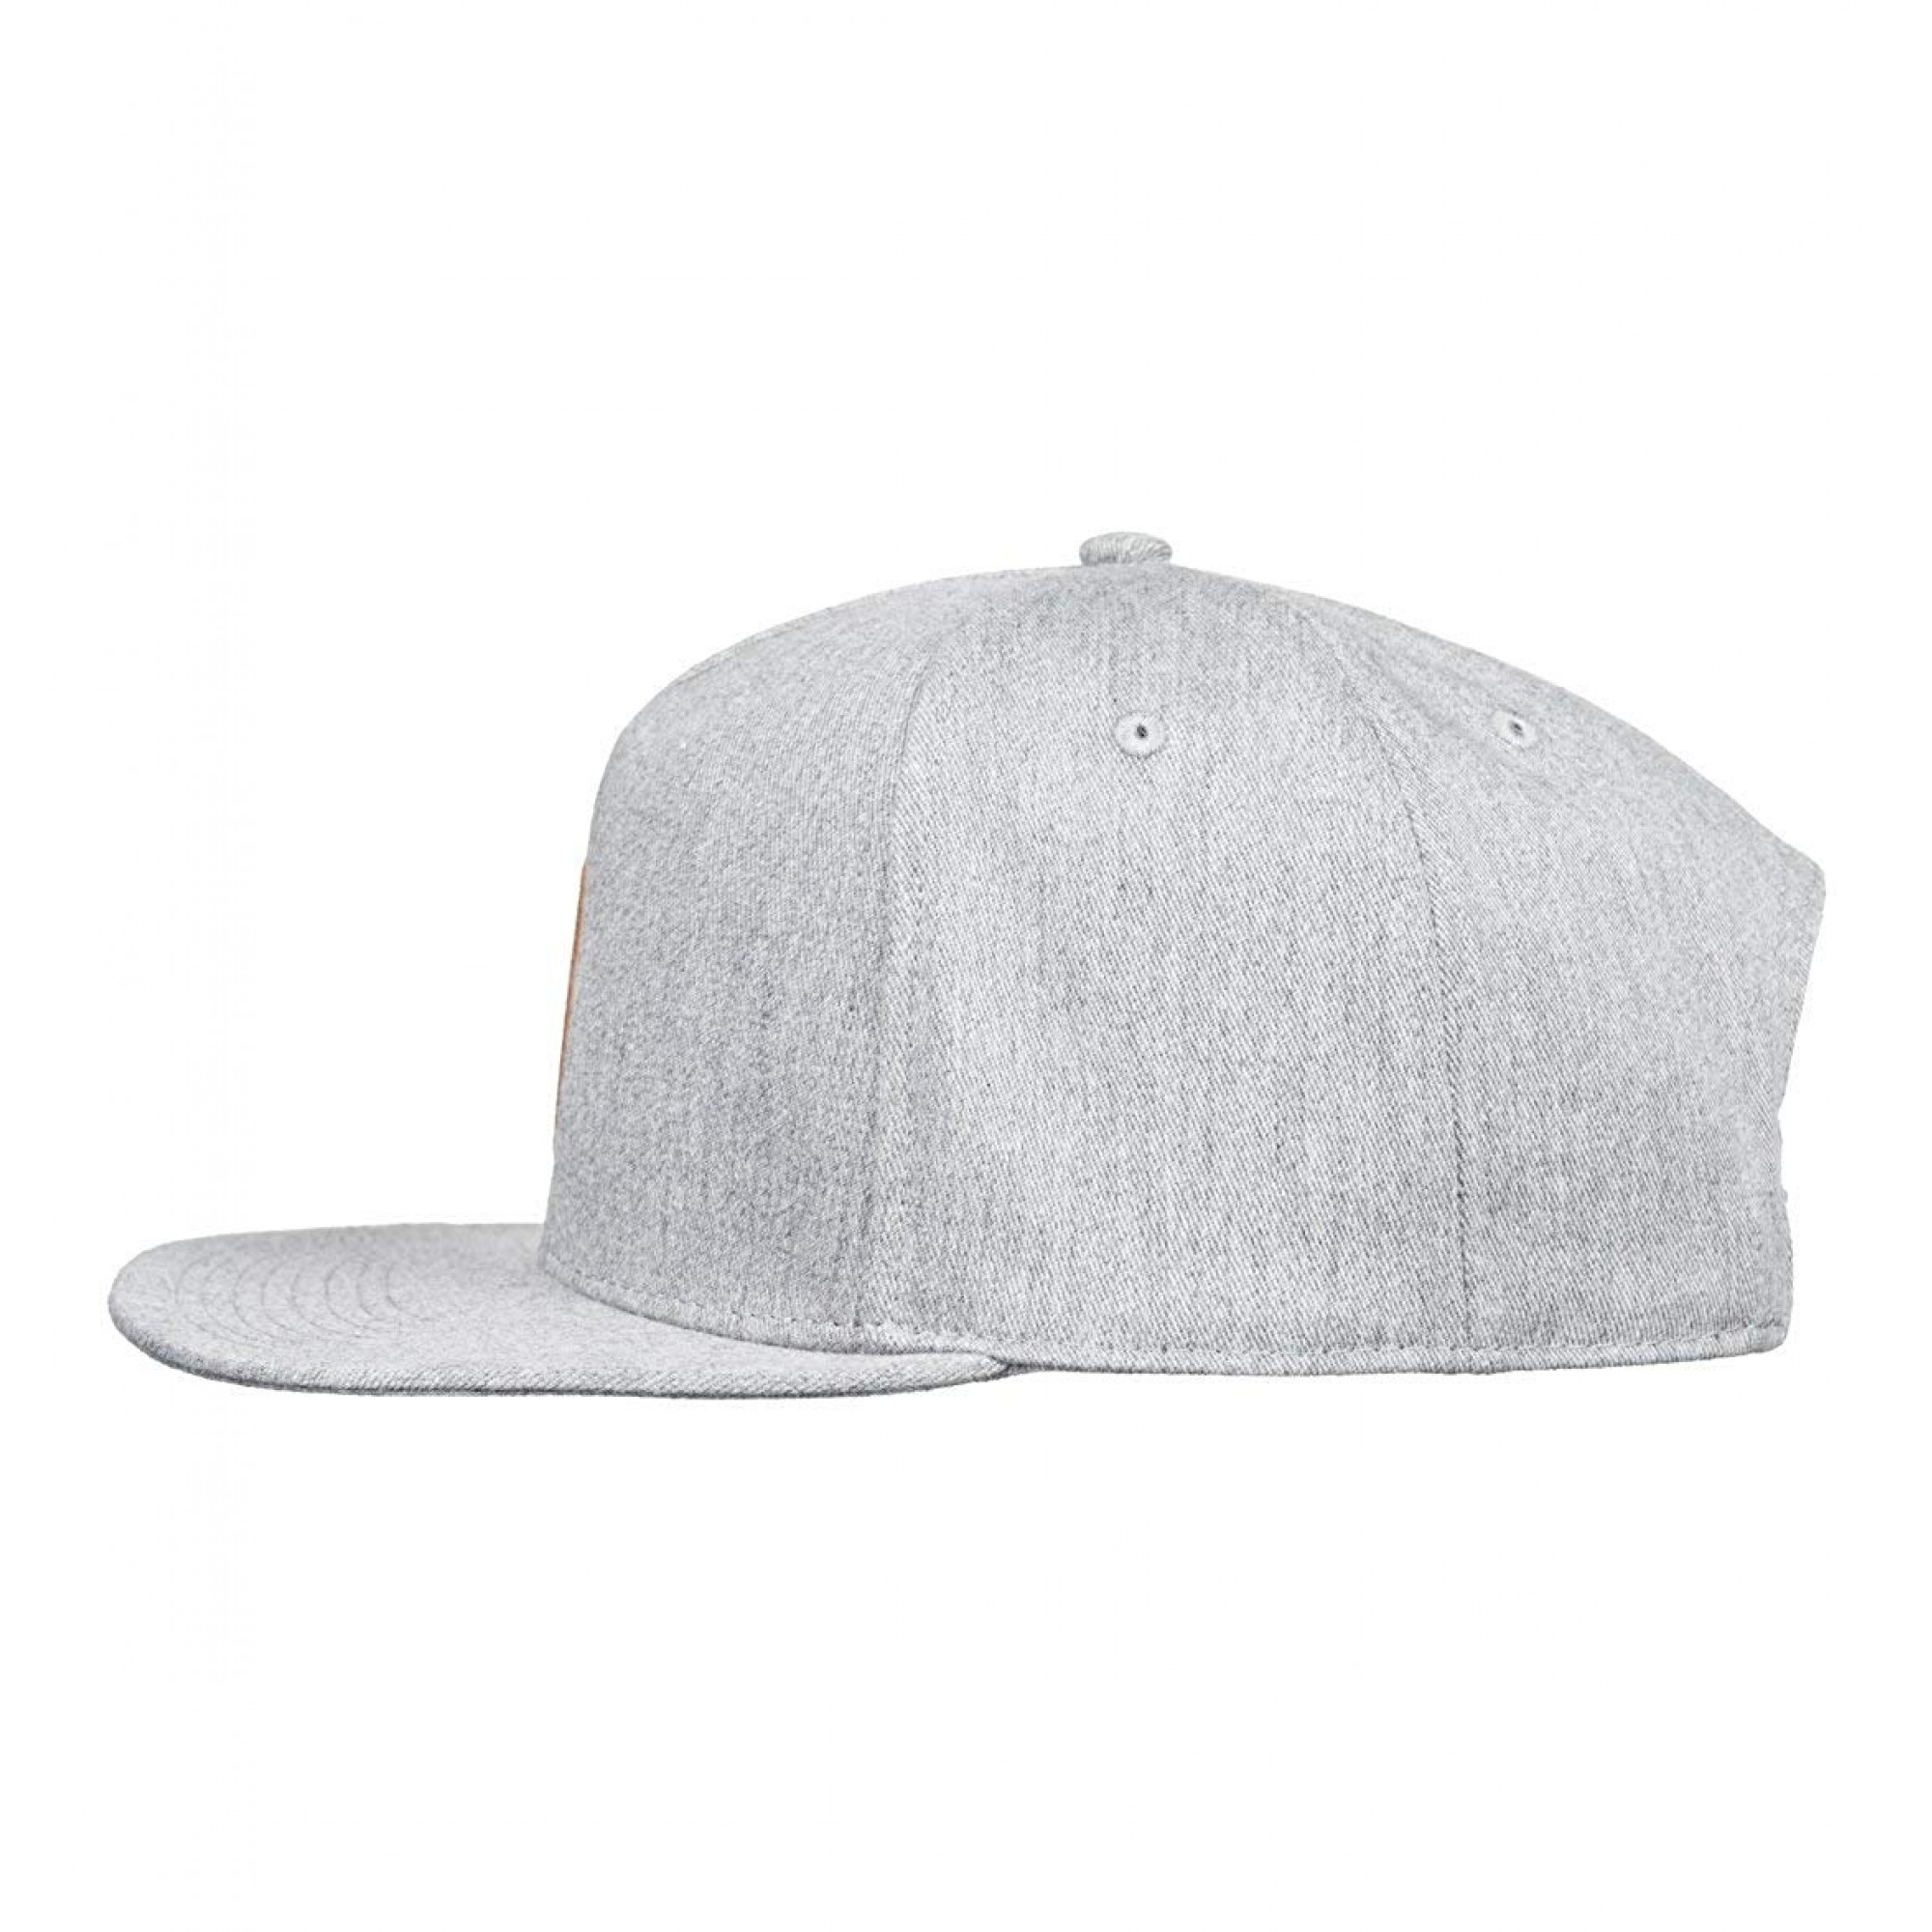 28fa8917613 Venue Store DC Reynotts Youth Snapback Cap - Heather Charcoal Free Delivery  Over  100